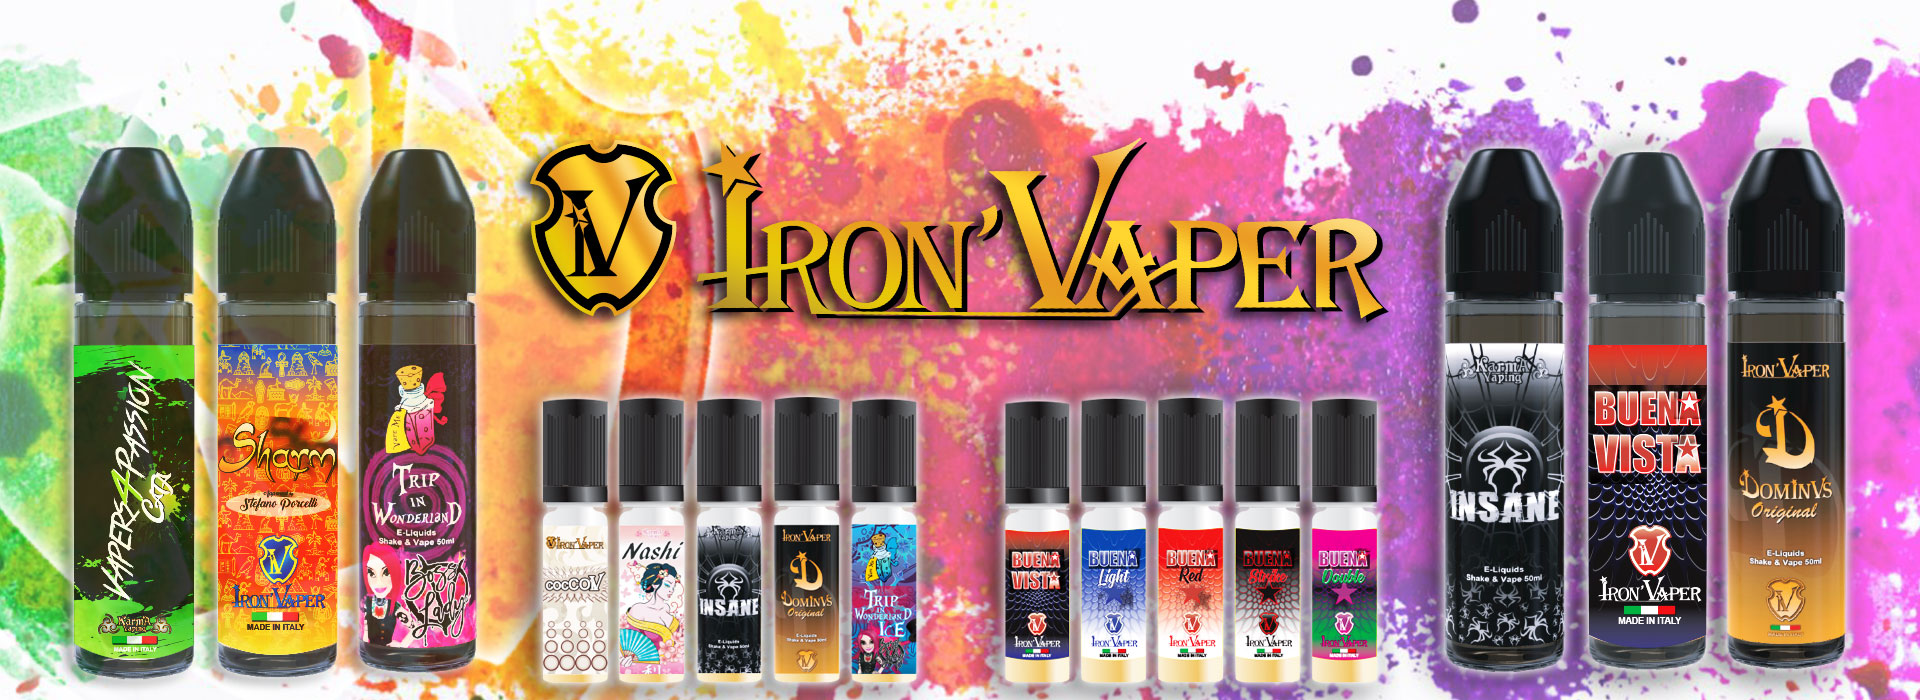 Iron Vaper Privati